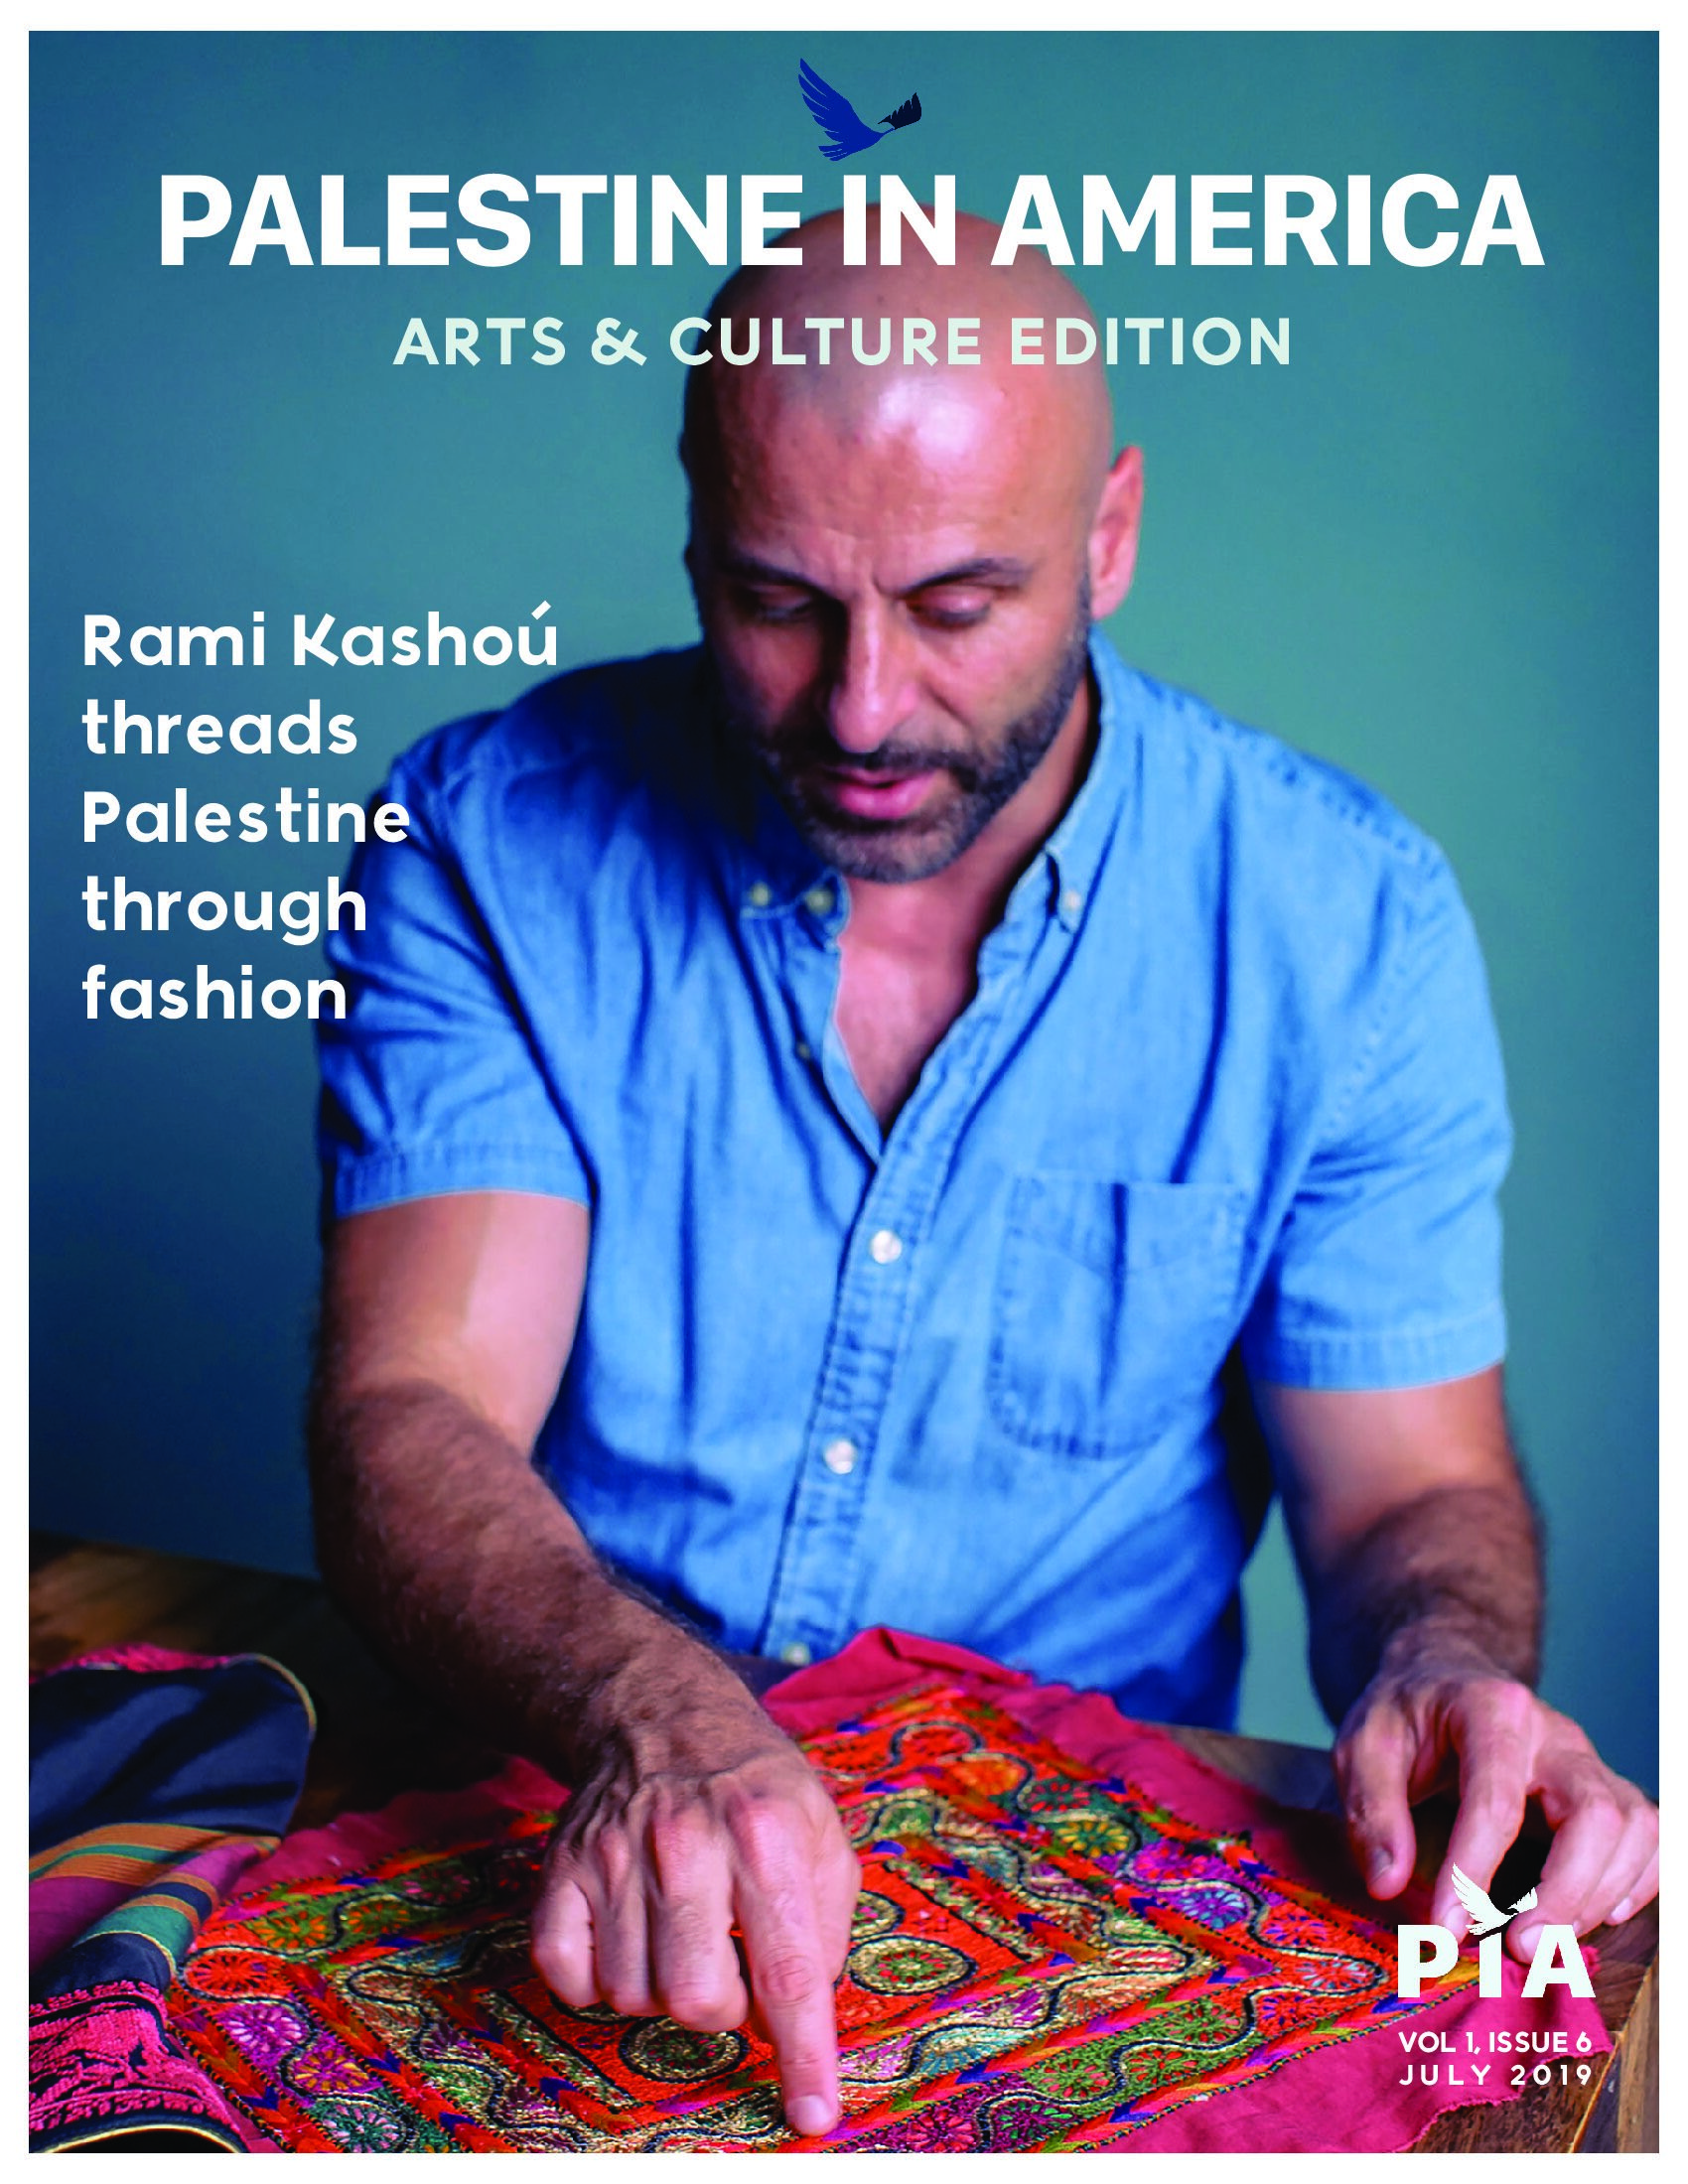 ORder your copy of Palestine in america's arts & Culture issue today! - Become a subscriber for $5/month to make sure you receive our quarterly issues first and get exclusive discounts on merchandise and Palipalooza!